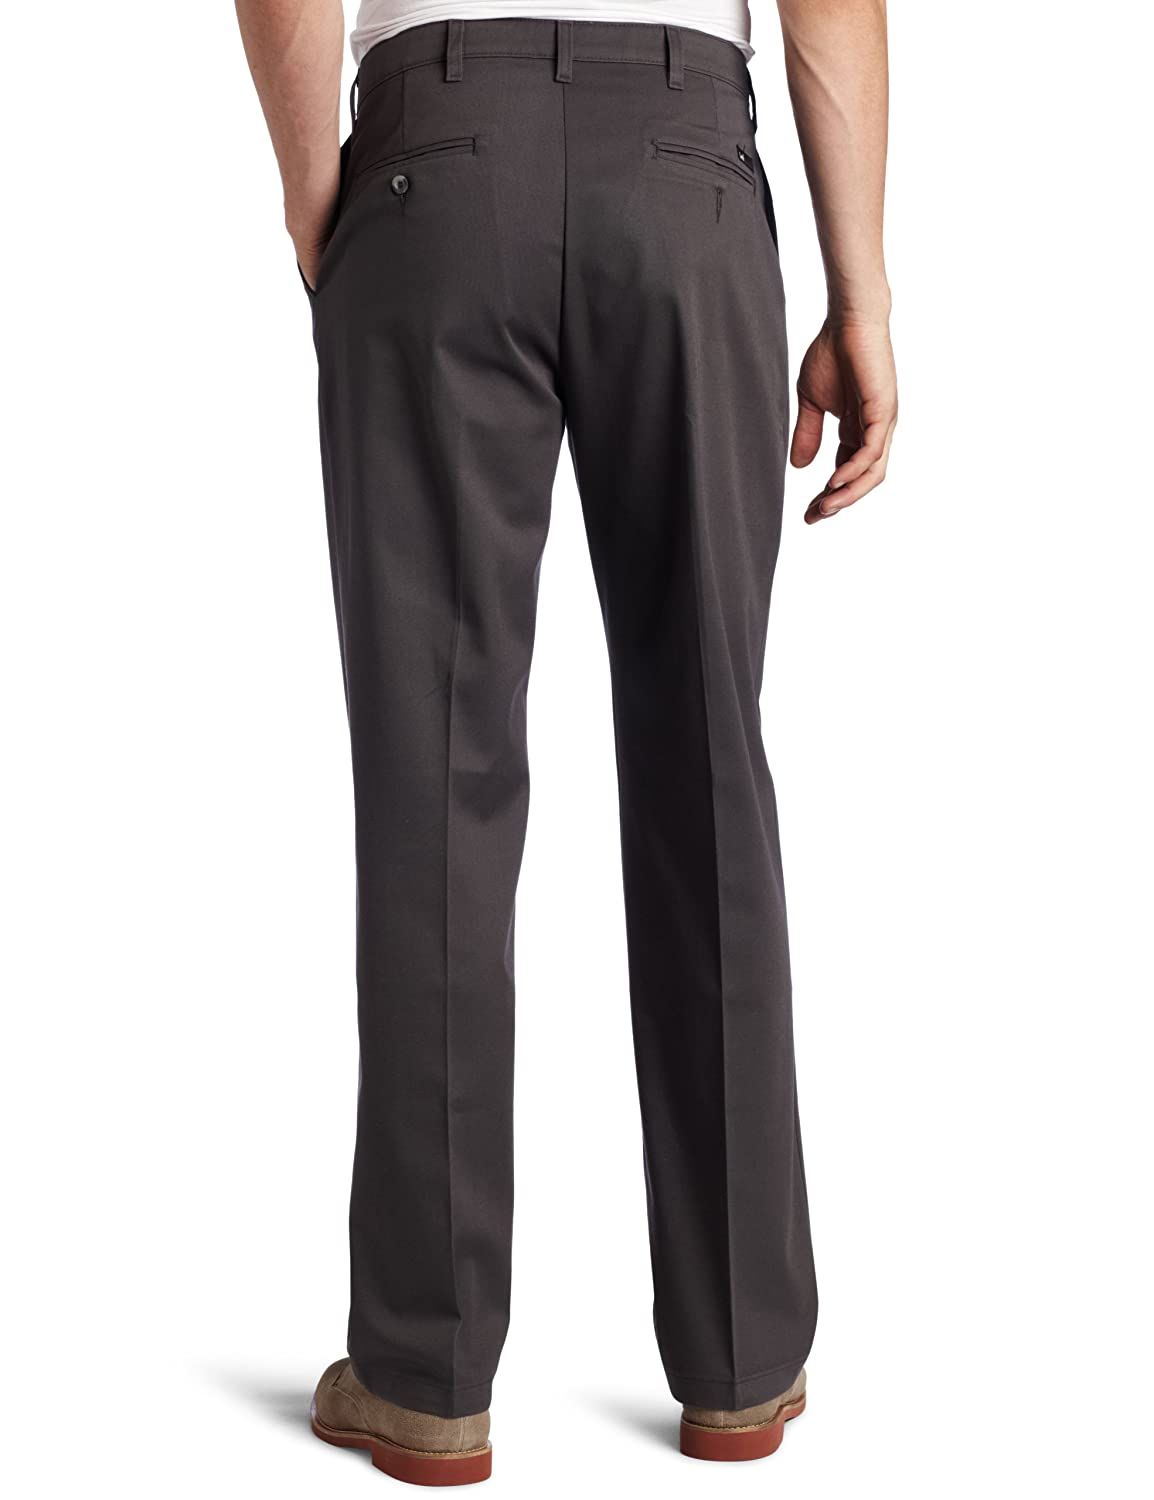 Lee Mens Comfort Waist Custom Relaxed Fit Flat Front Pant